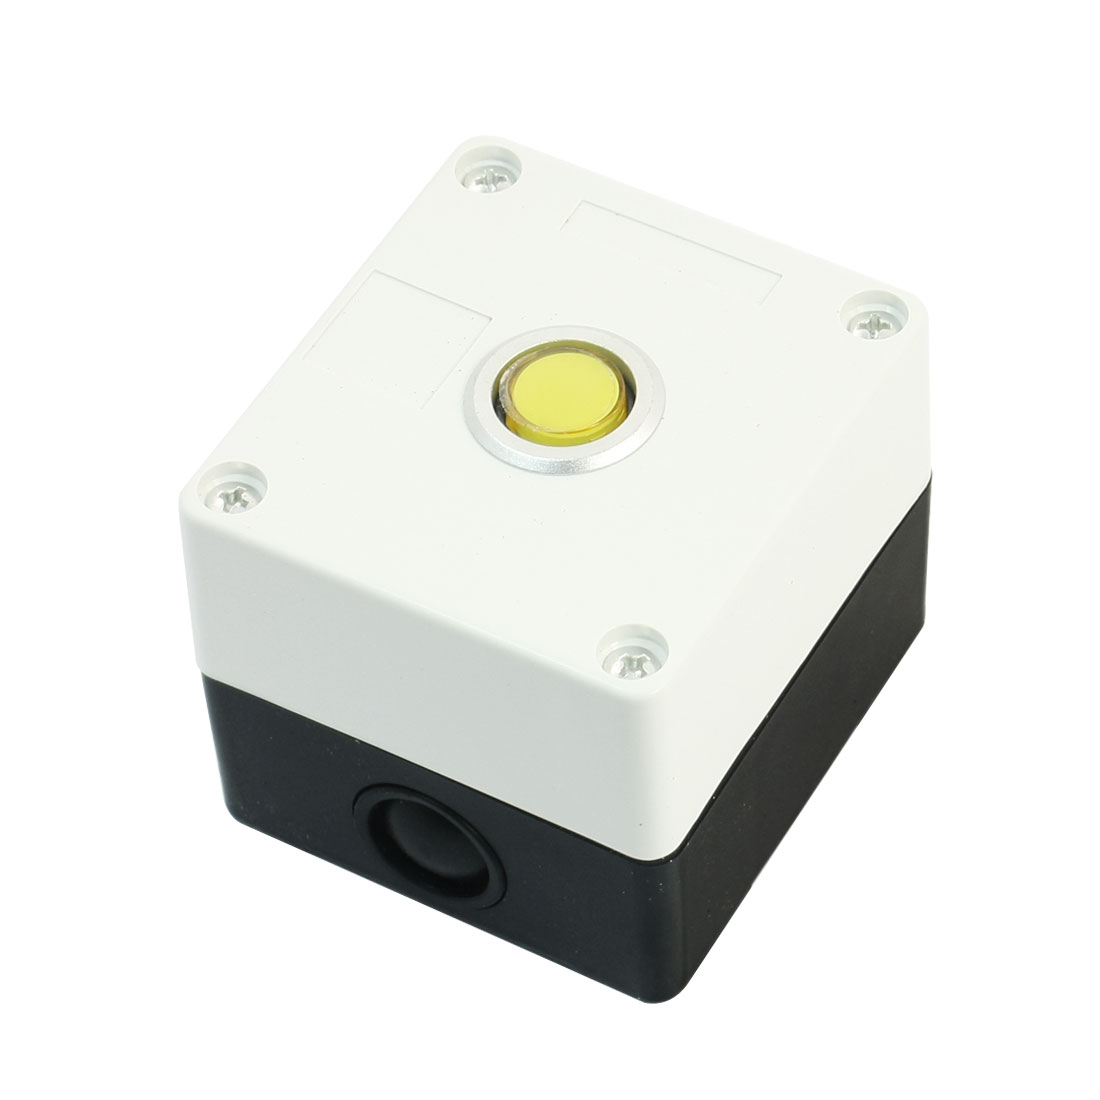 Yellow 220V Pilot Lamp AC 250 Volt 5A SPDT 5 Terminals Self-locking Single Hole Pushbutton Push Button Rectangle Plastic Control Station Box